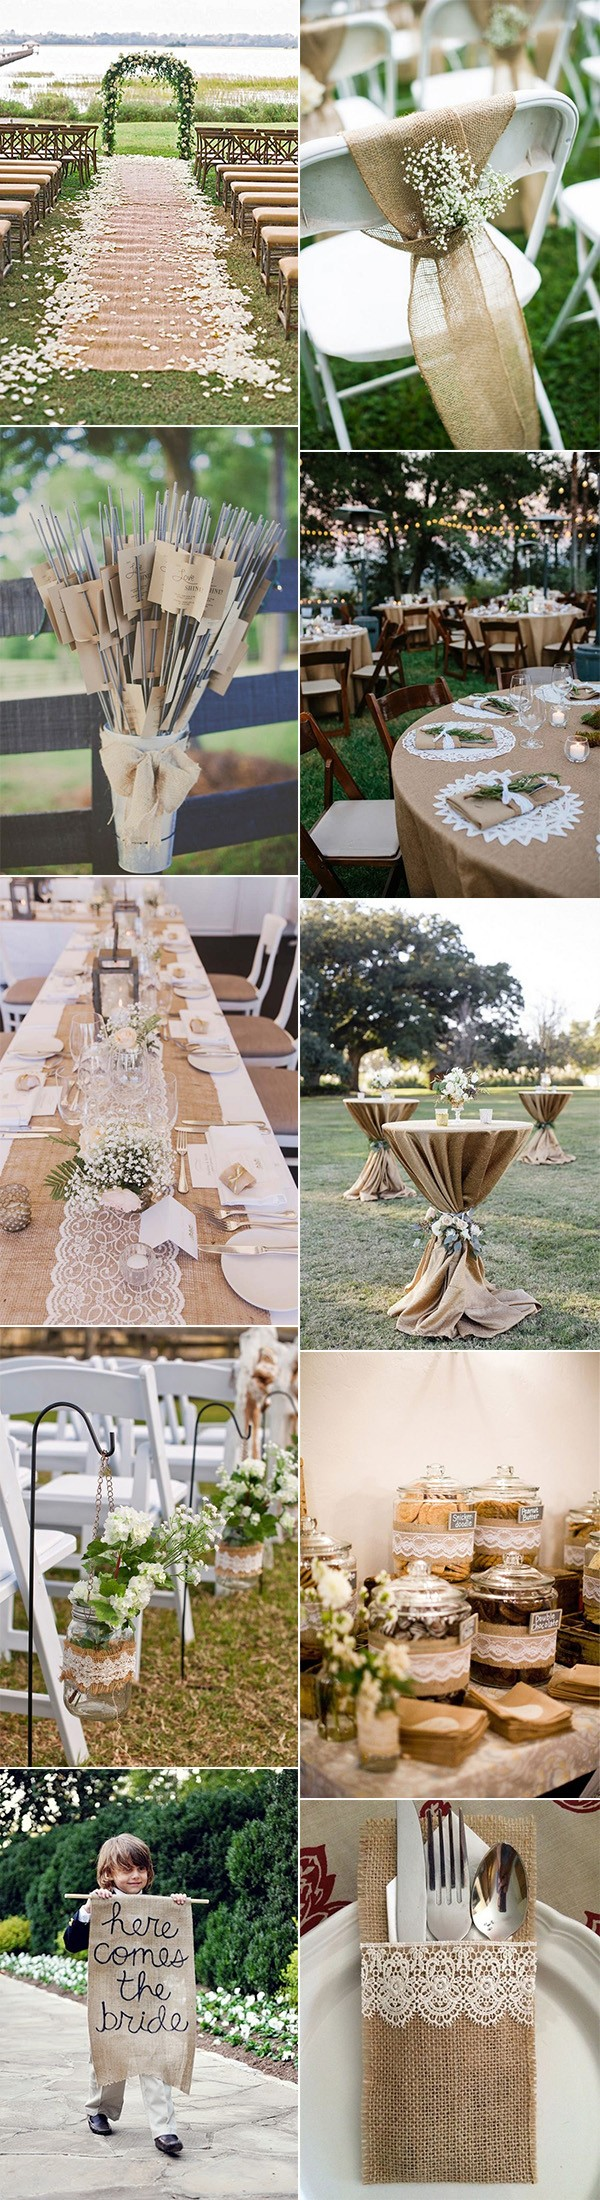 15 Rustic Lace and Burlap Wedding Ideas to Love - EmmaLovesWeddings